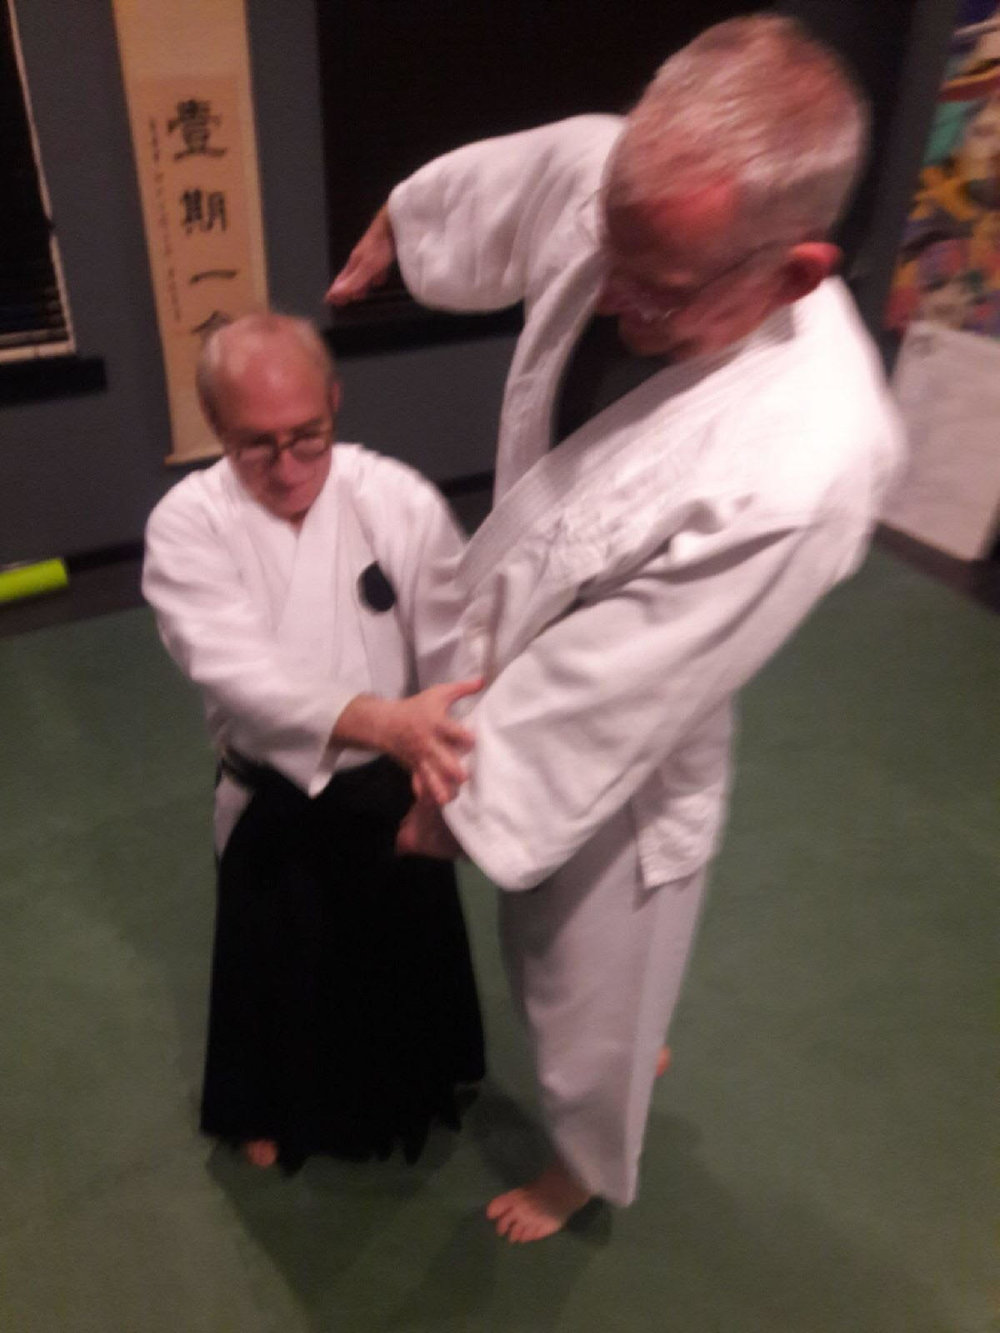 Goldberg Sensei demonstrating aiki age on Cory Juhl. Size is no obstacle in Daito Ryu.